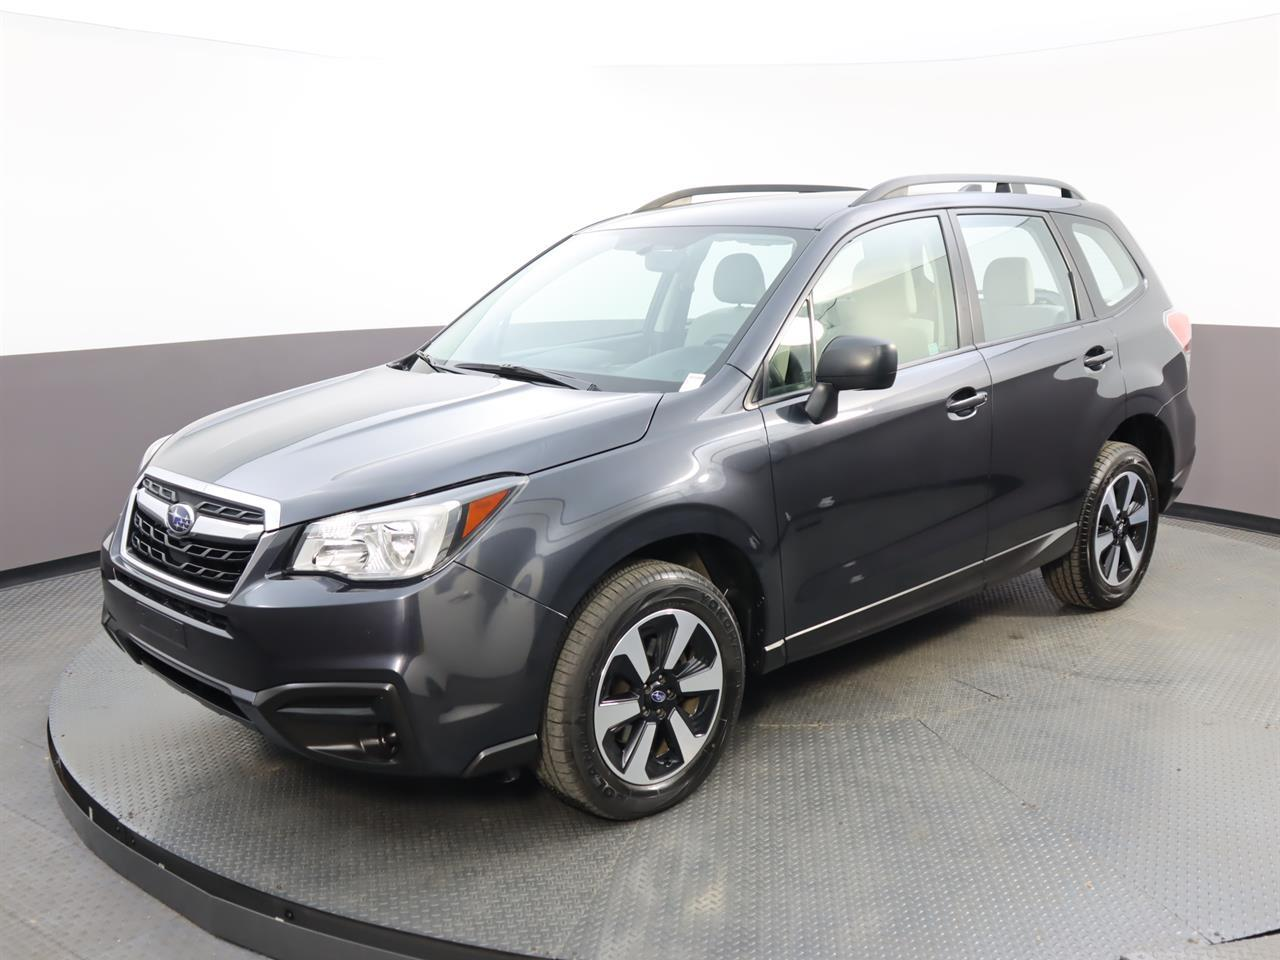 Used SUBARU FORESTER 2018 MIAMI